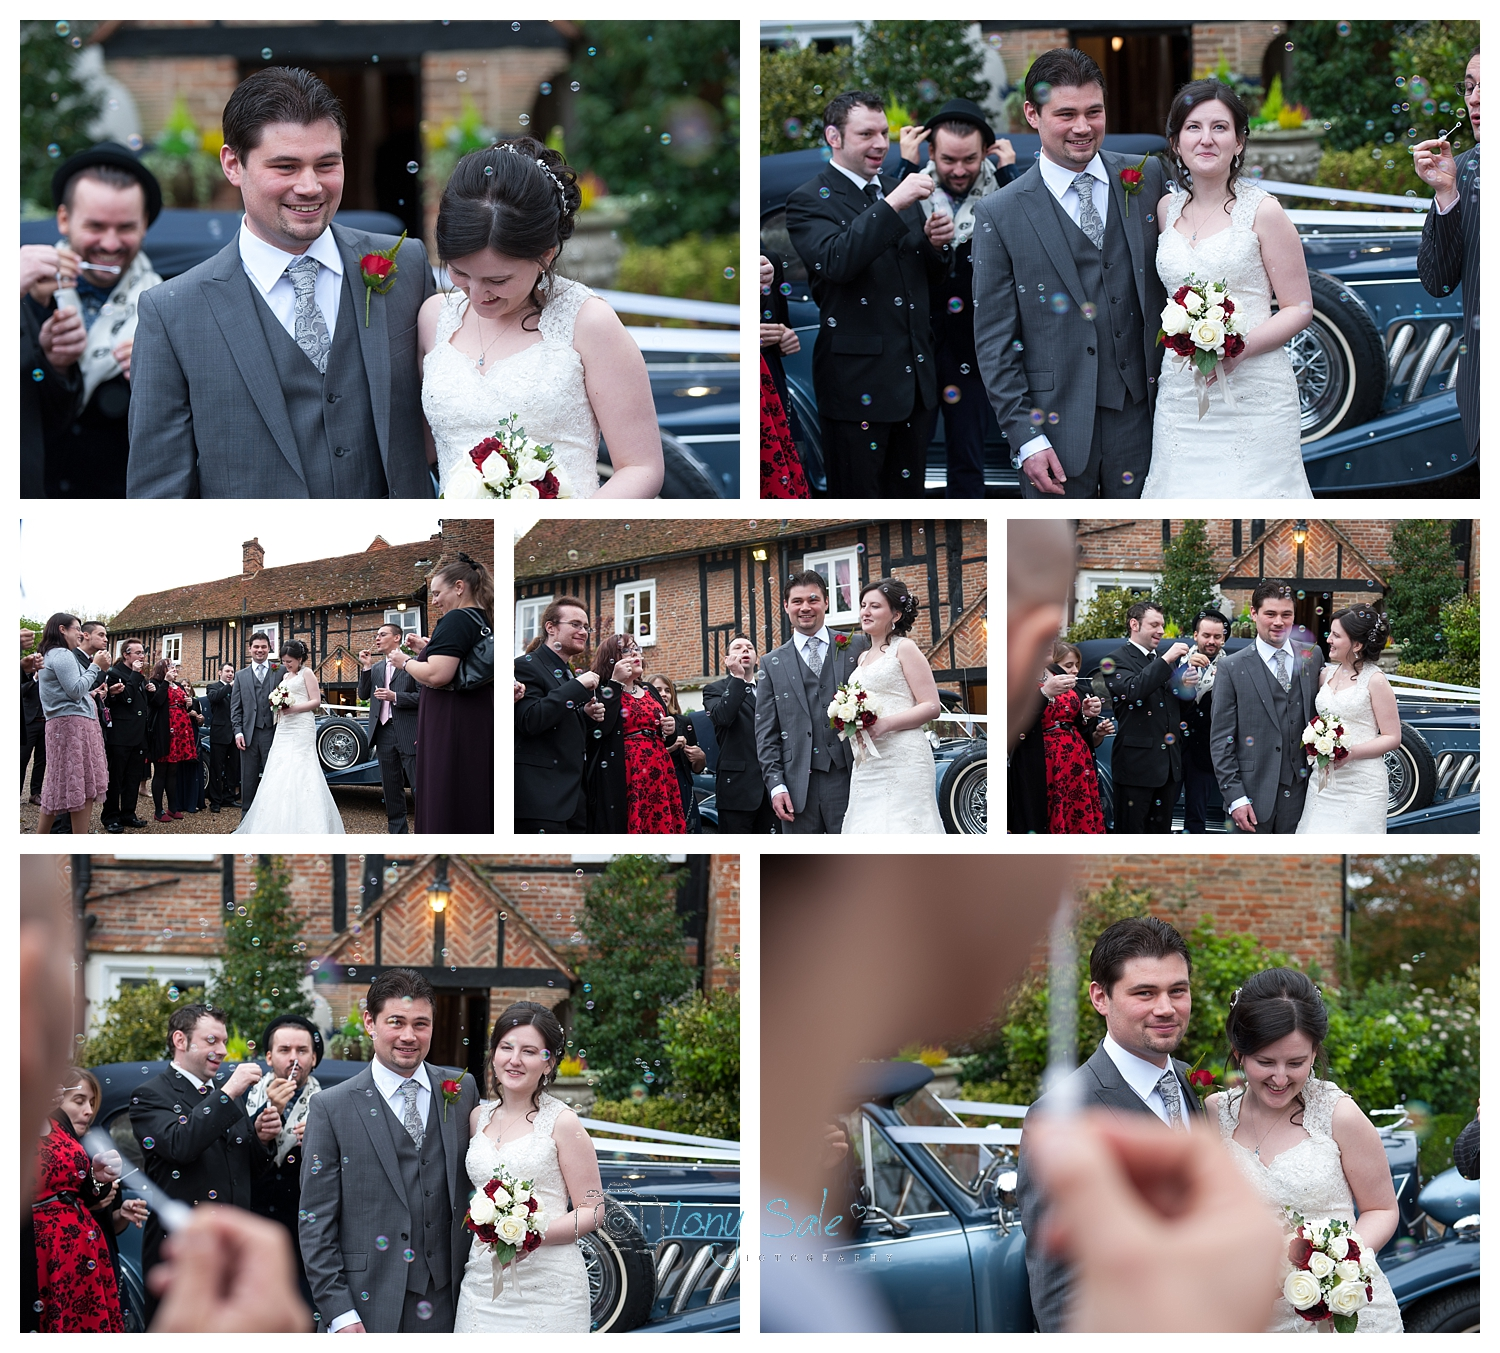 wedding-bubbles-newland-hall